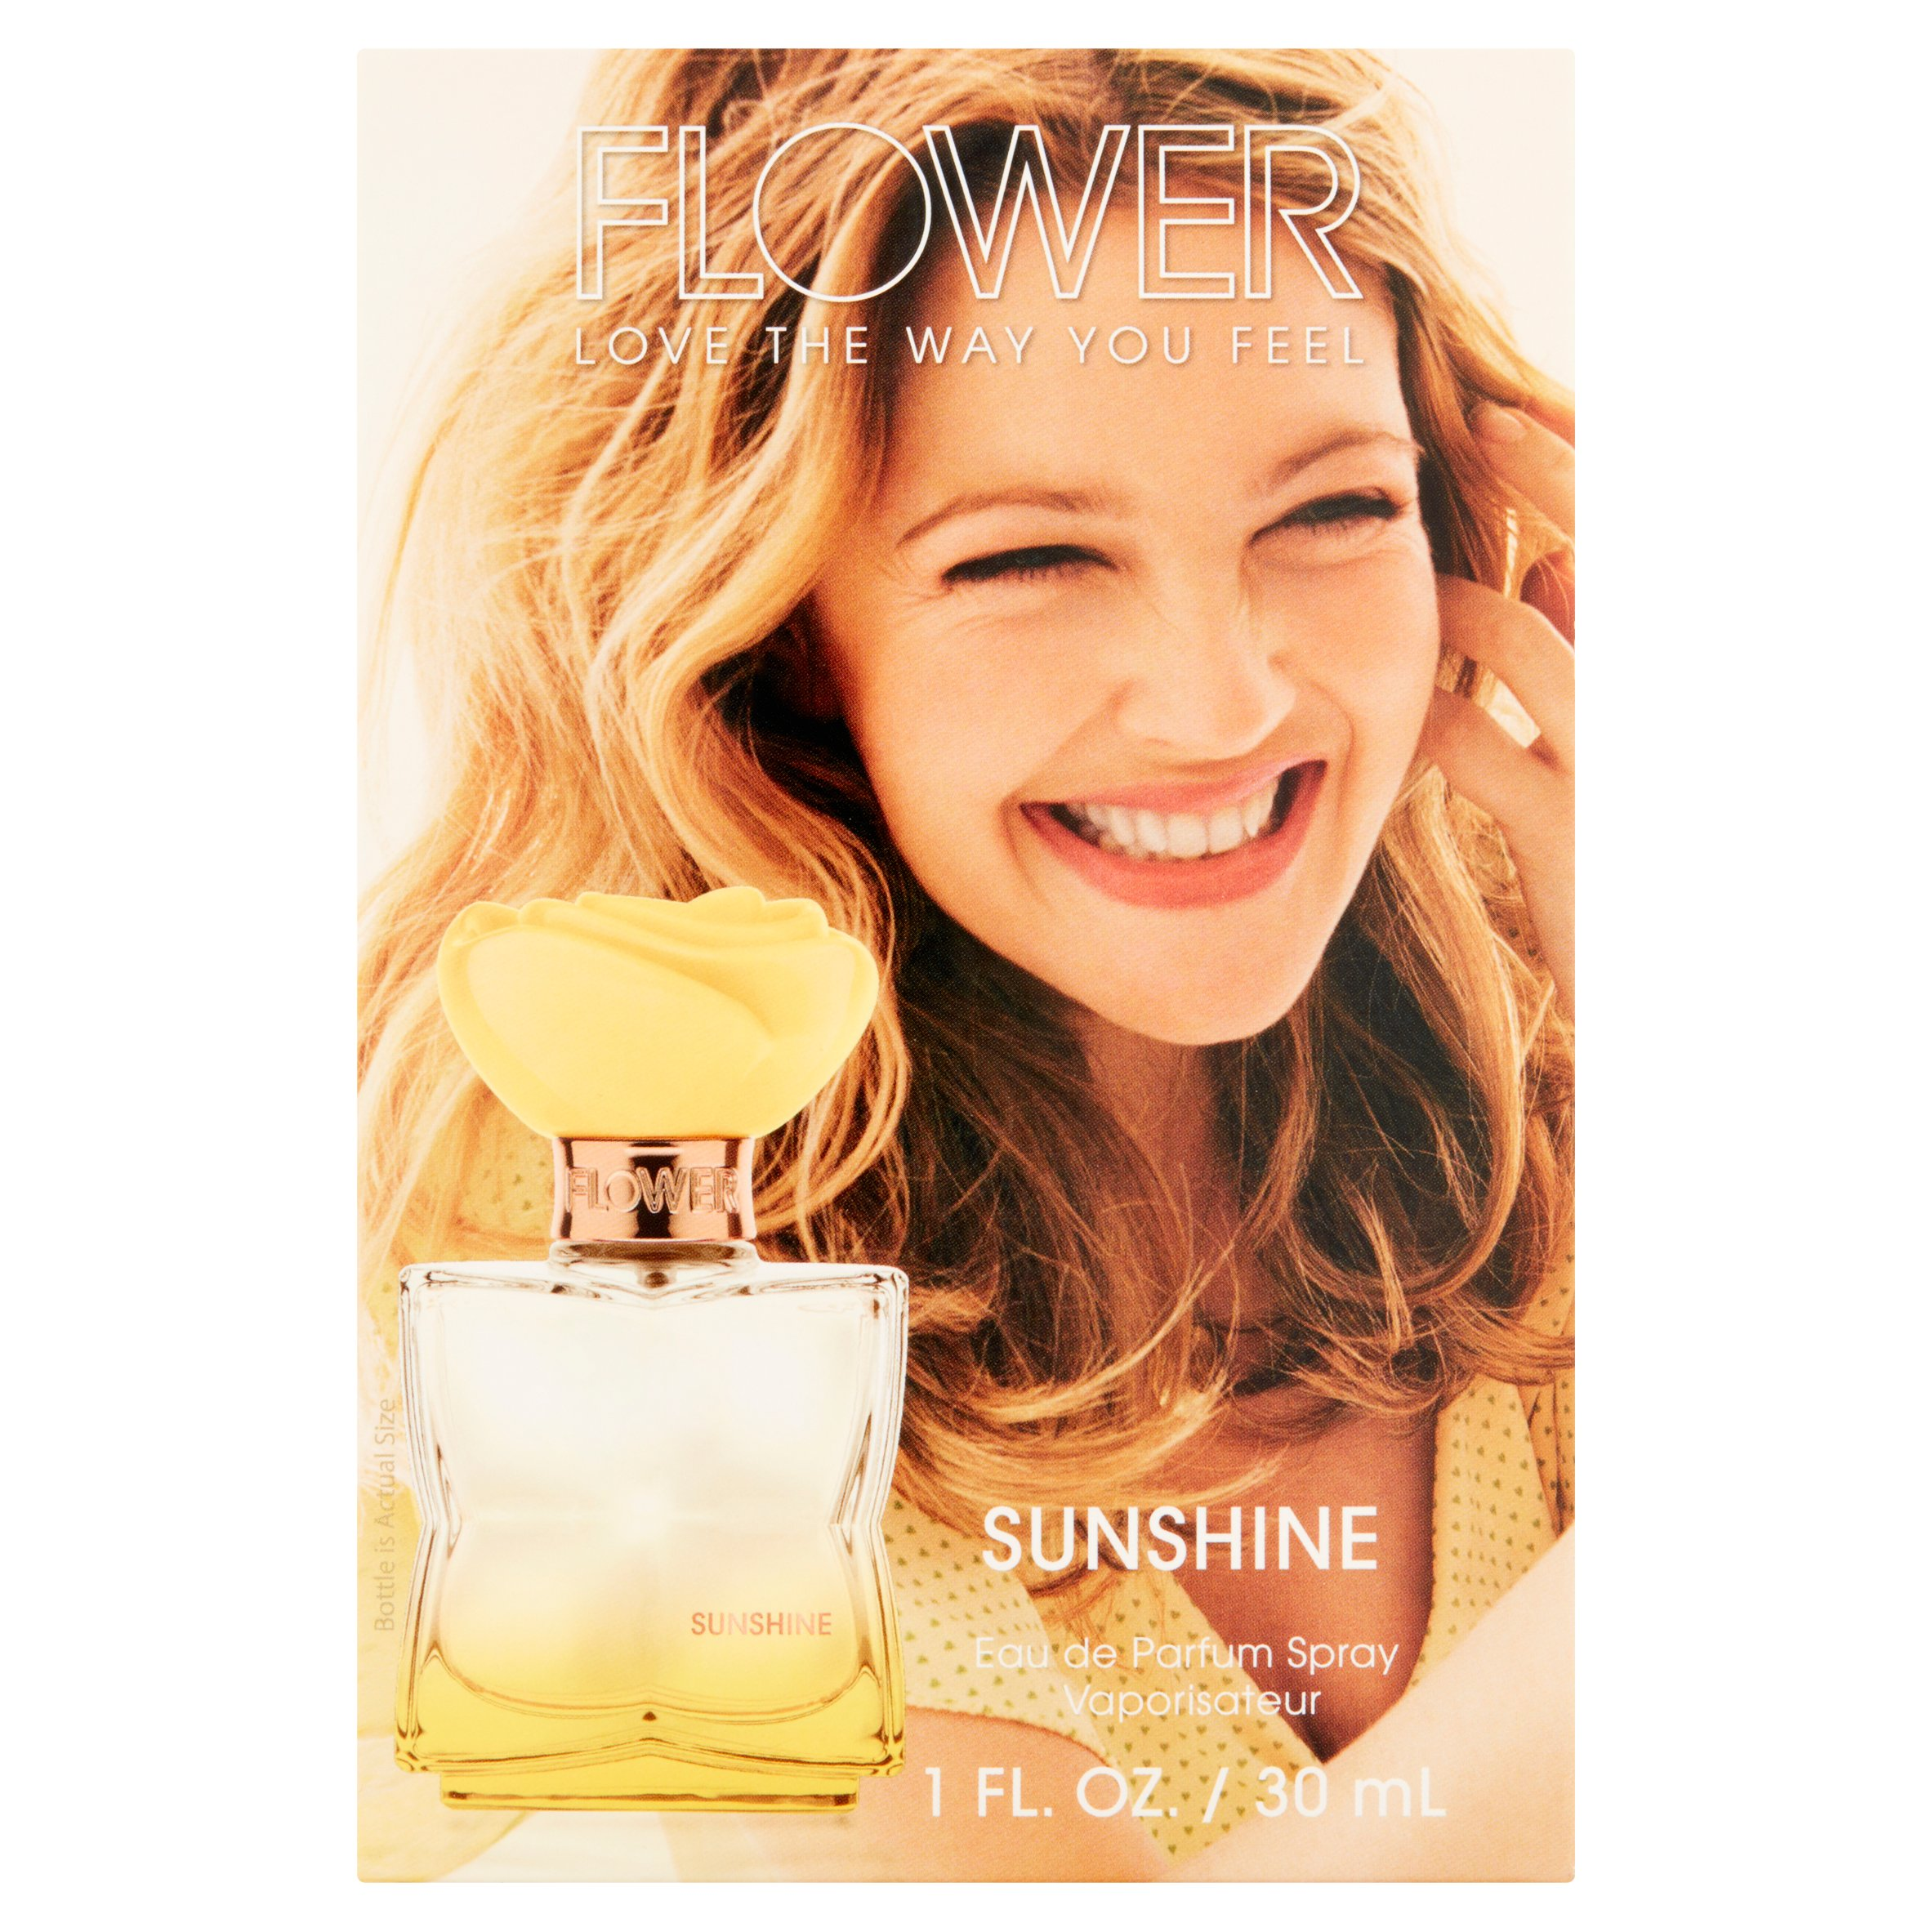 Flower Sunshine Eau de Parfum Spray, 1 fl oz